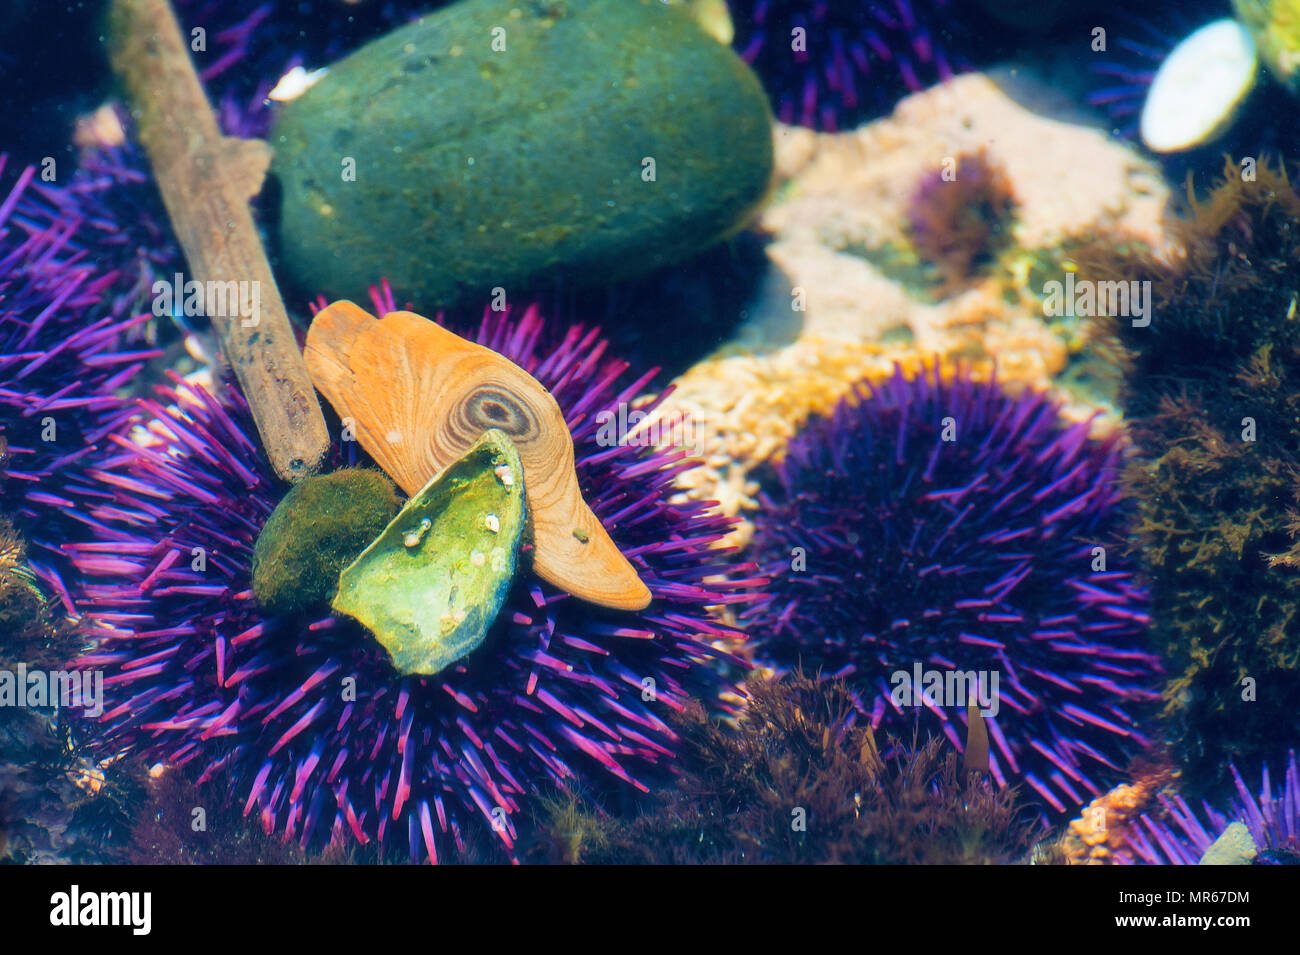 At Yaquina Head's Cobble beach in Newport Oregon, purple sea urchins are a great attractraction in the tidepools as shown in this closeup image. - Stock Image